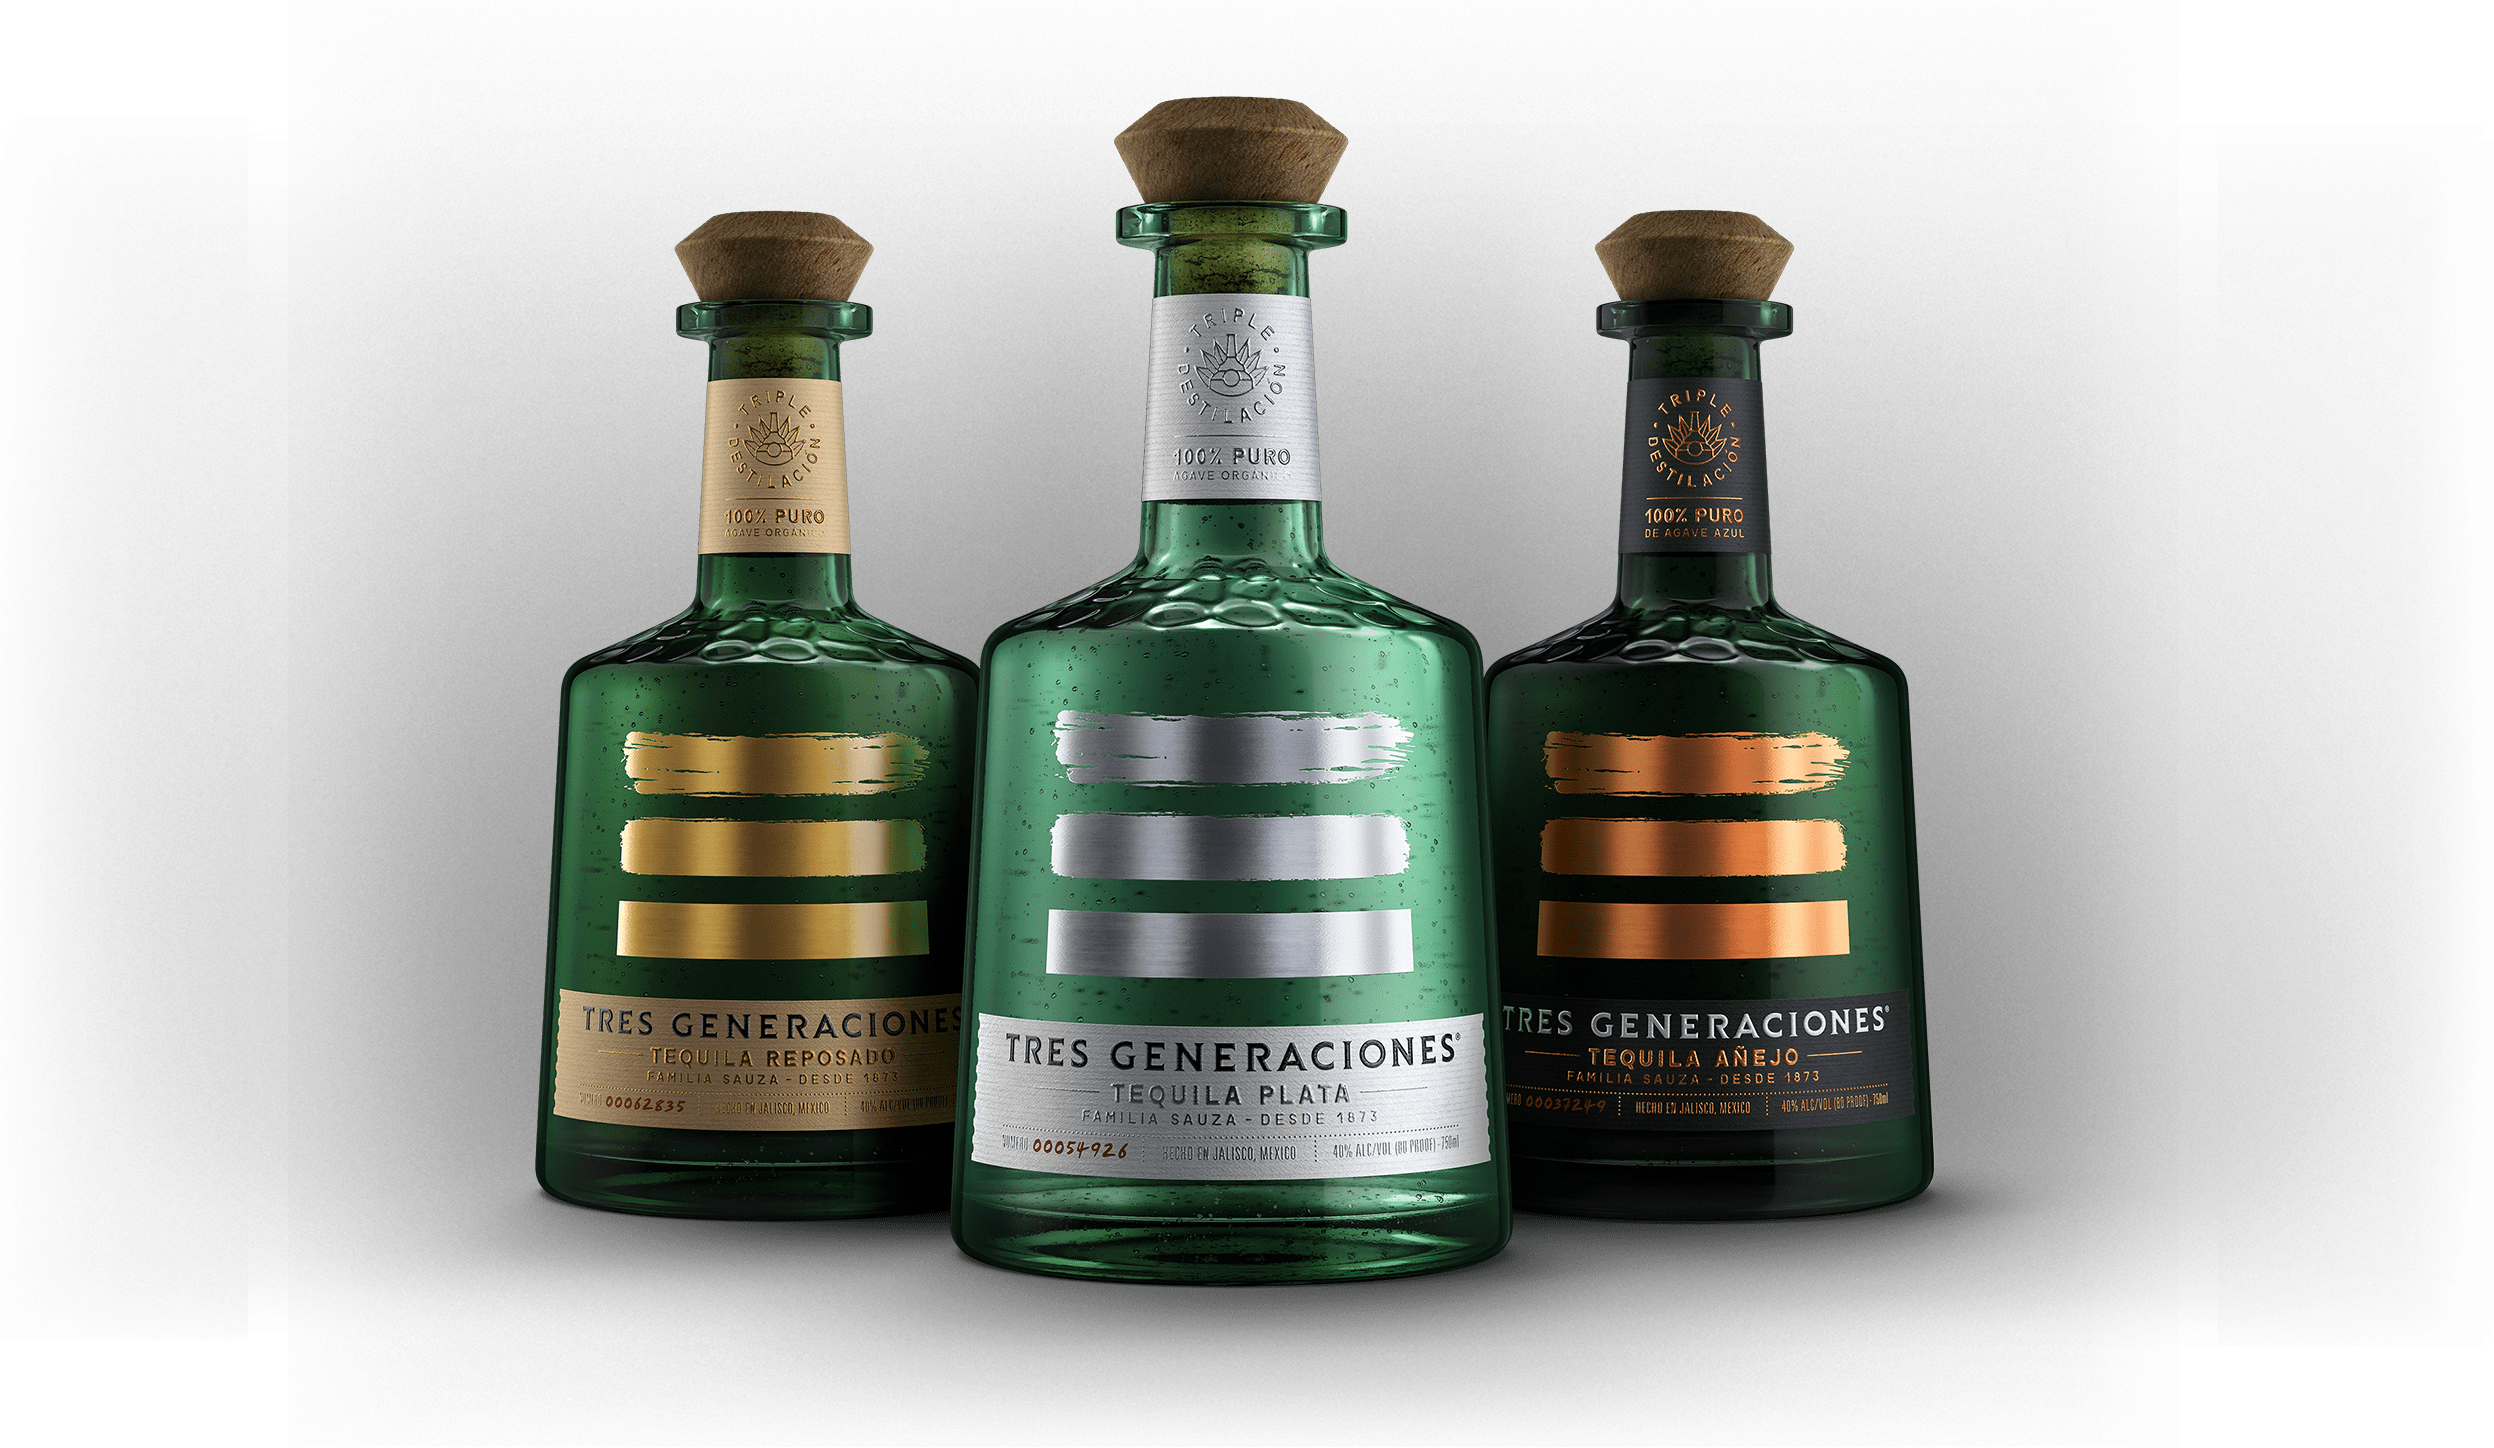 Three bottles of Tres Generaciones tequila lined up, including Blanco tequila, Reposado tequila, and Anejo tequila.